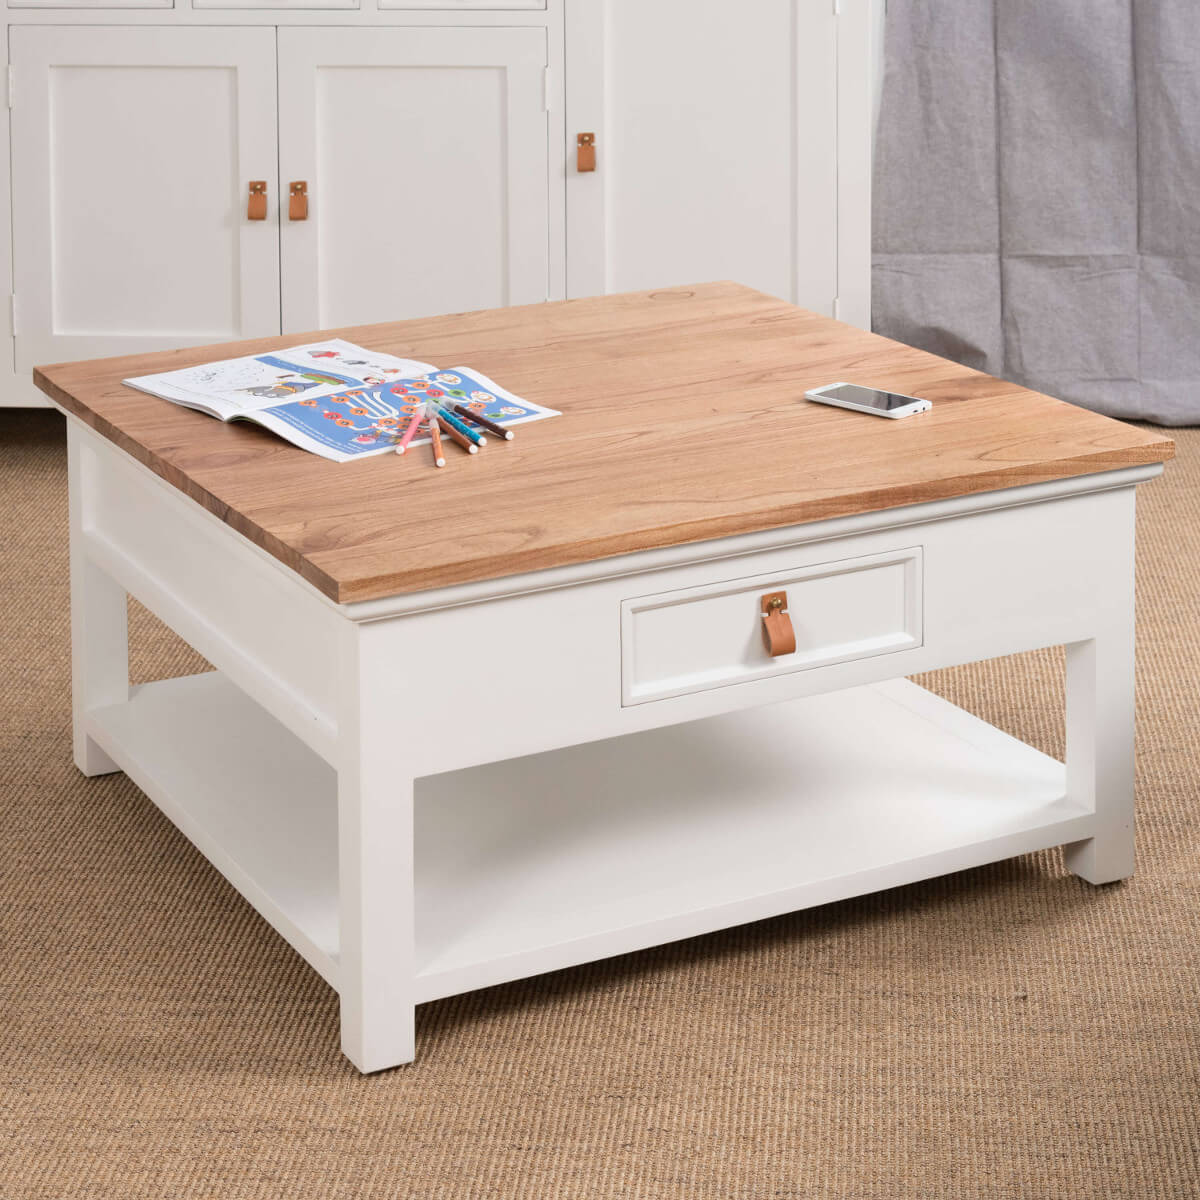 Table basse blanche table basse acajou carr e bois - Tables de salon en bois ...